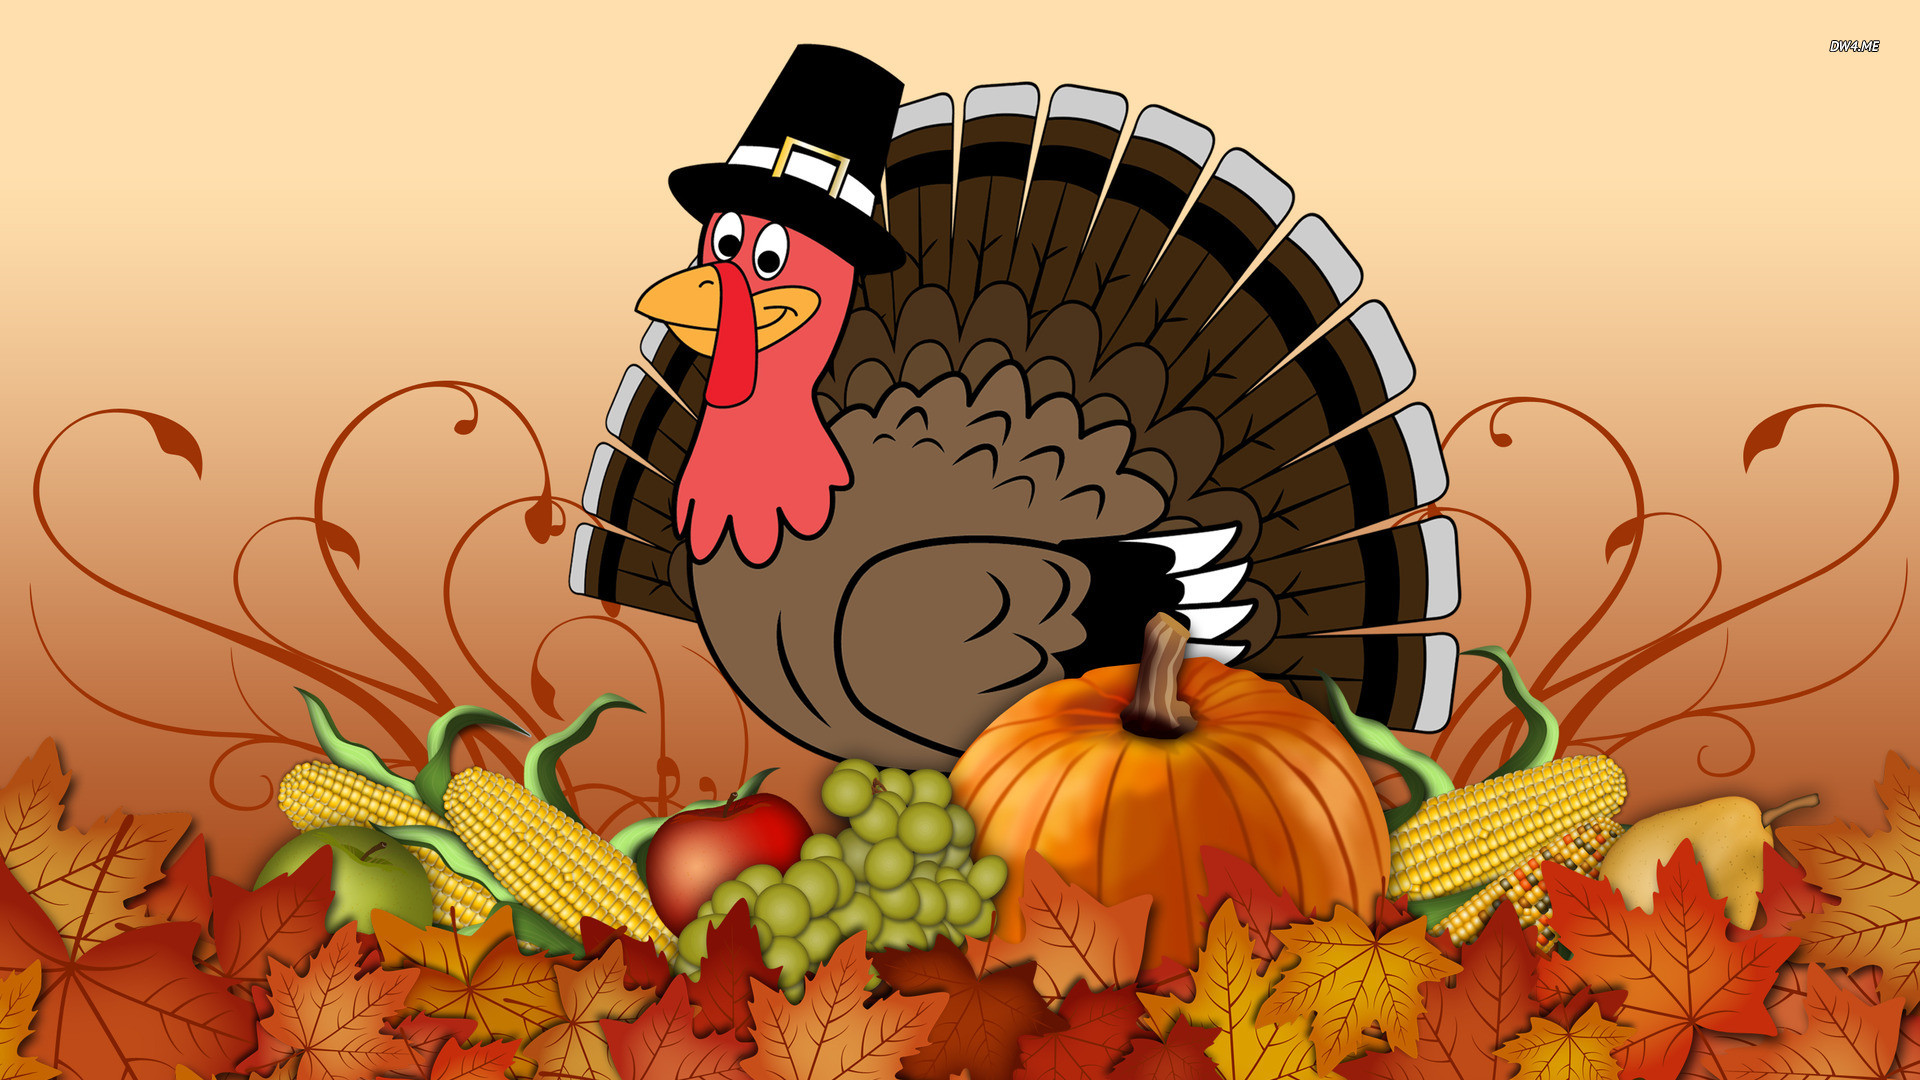 Thanksgiving Wallpaper Backgrounds 57 images 1920x1080